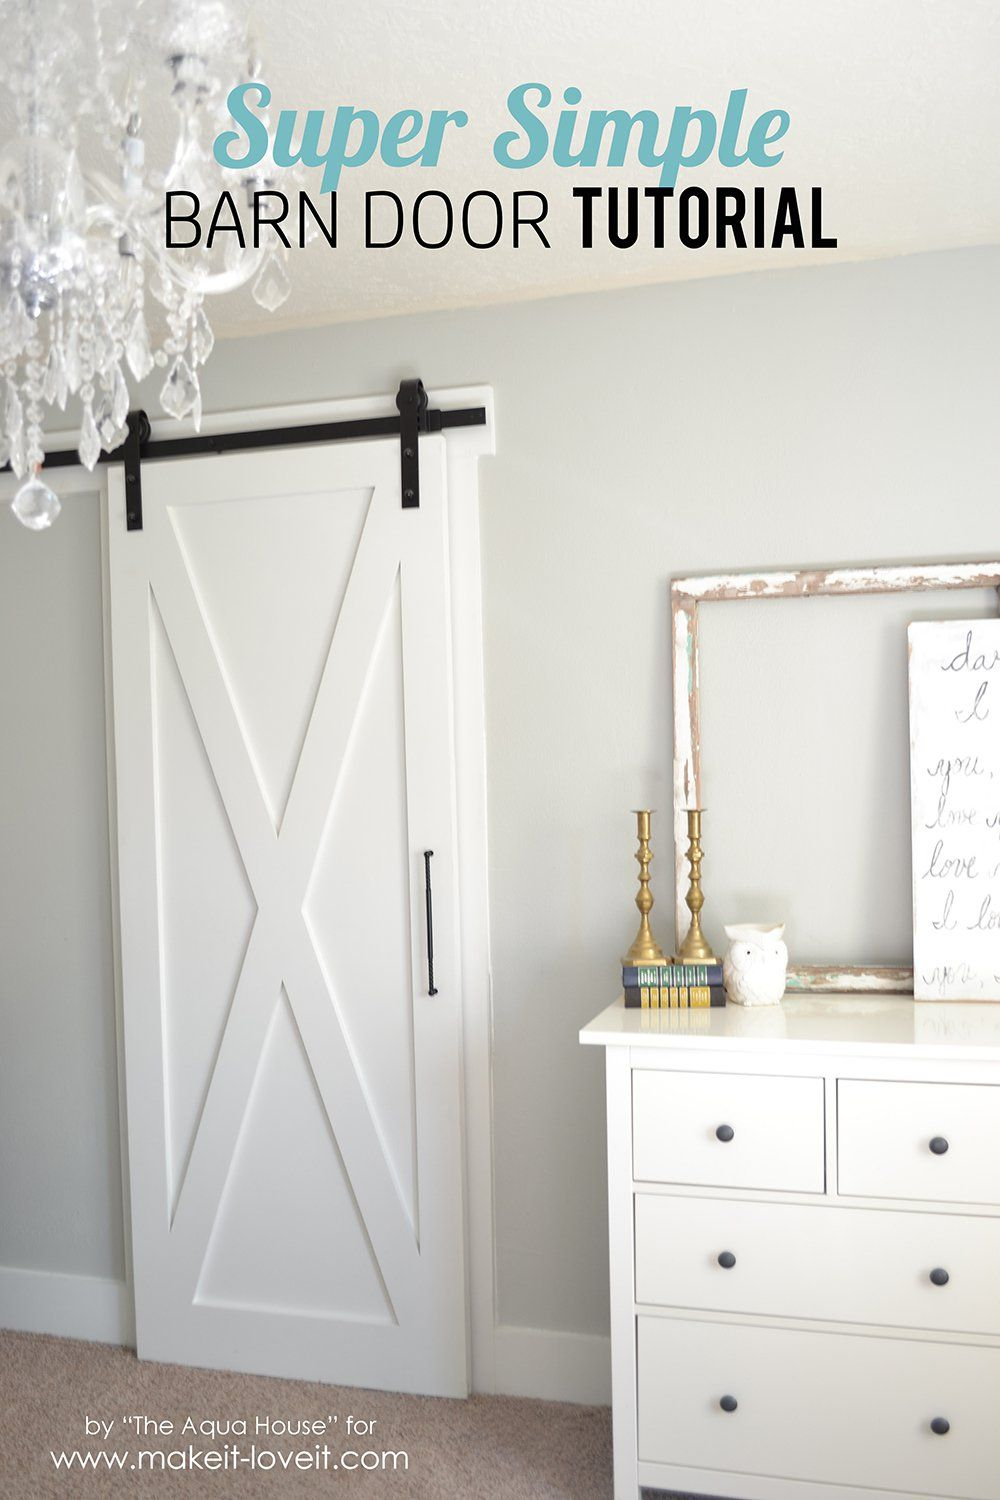 Country-Cottage Bathroom Ideas | Faucet handles, Barn doors and ...